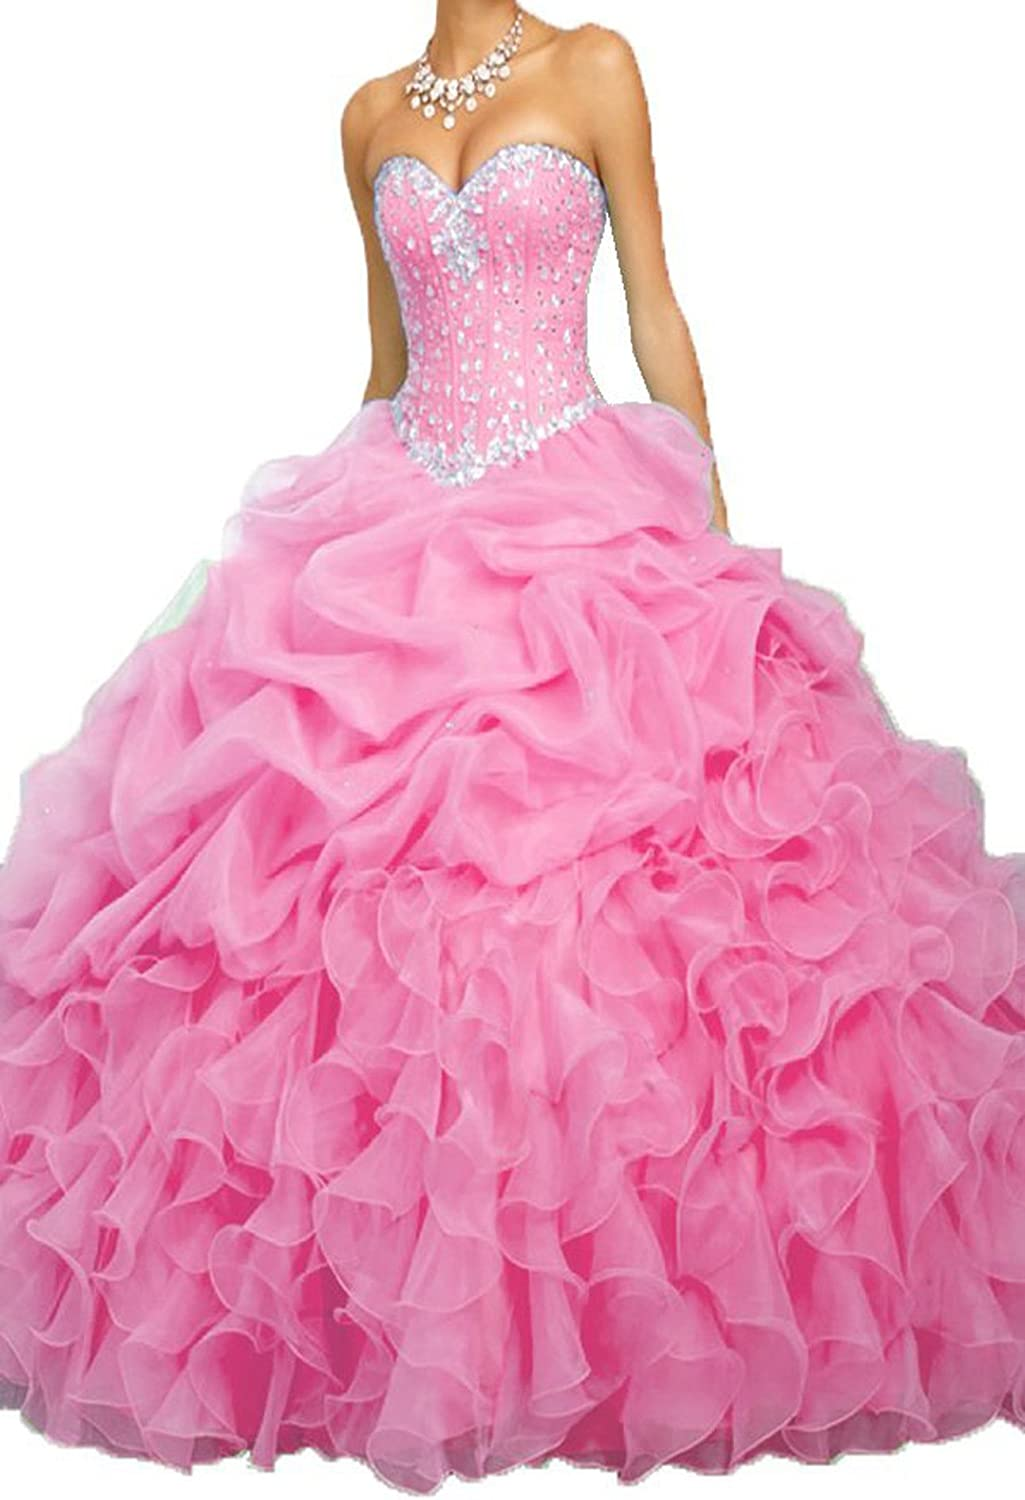 PromQueen Women's Beaded Ball Gown Sweet 16 Dresses Princess Quinceanera Dresses